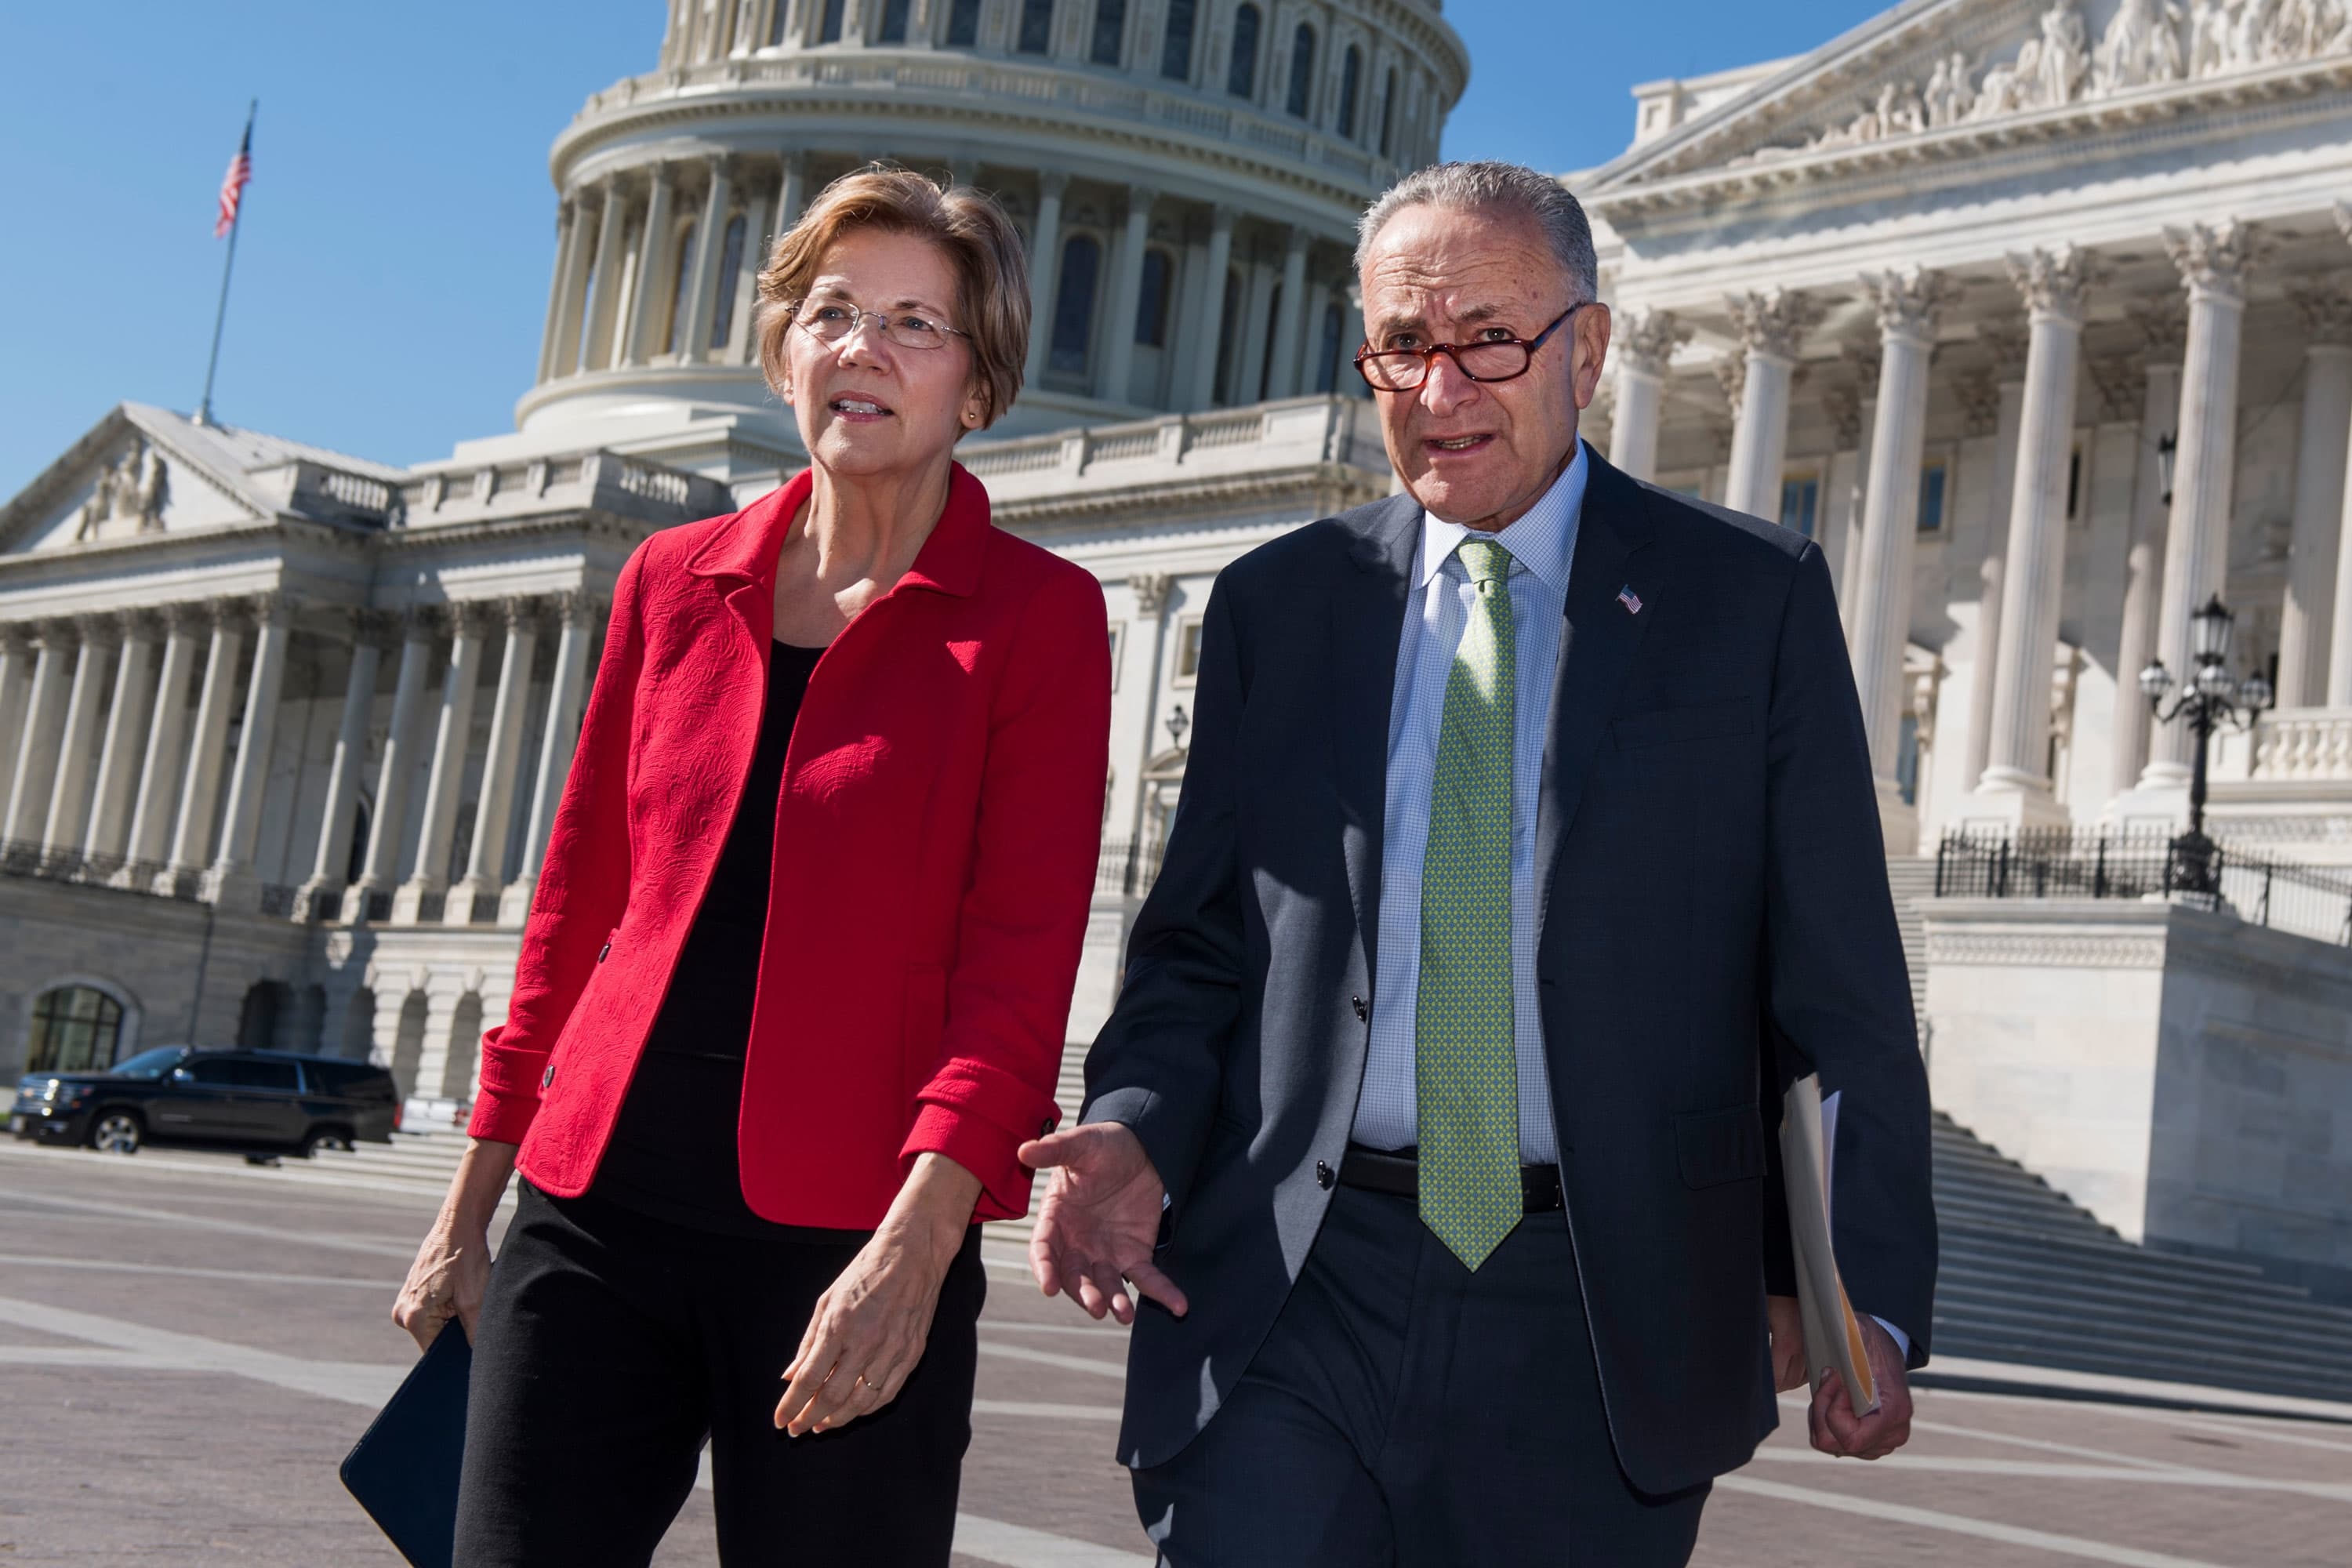 Schumer, Warren propose forgiving $50,000 in student debt for borrowers due to pandemic